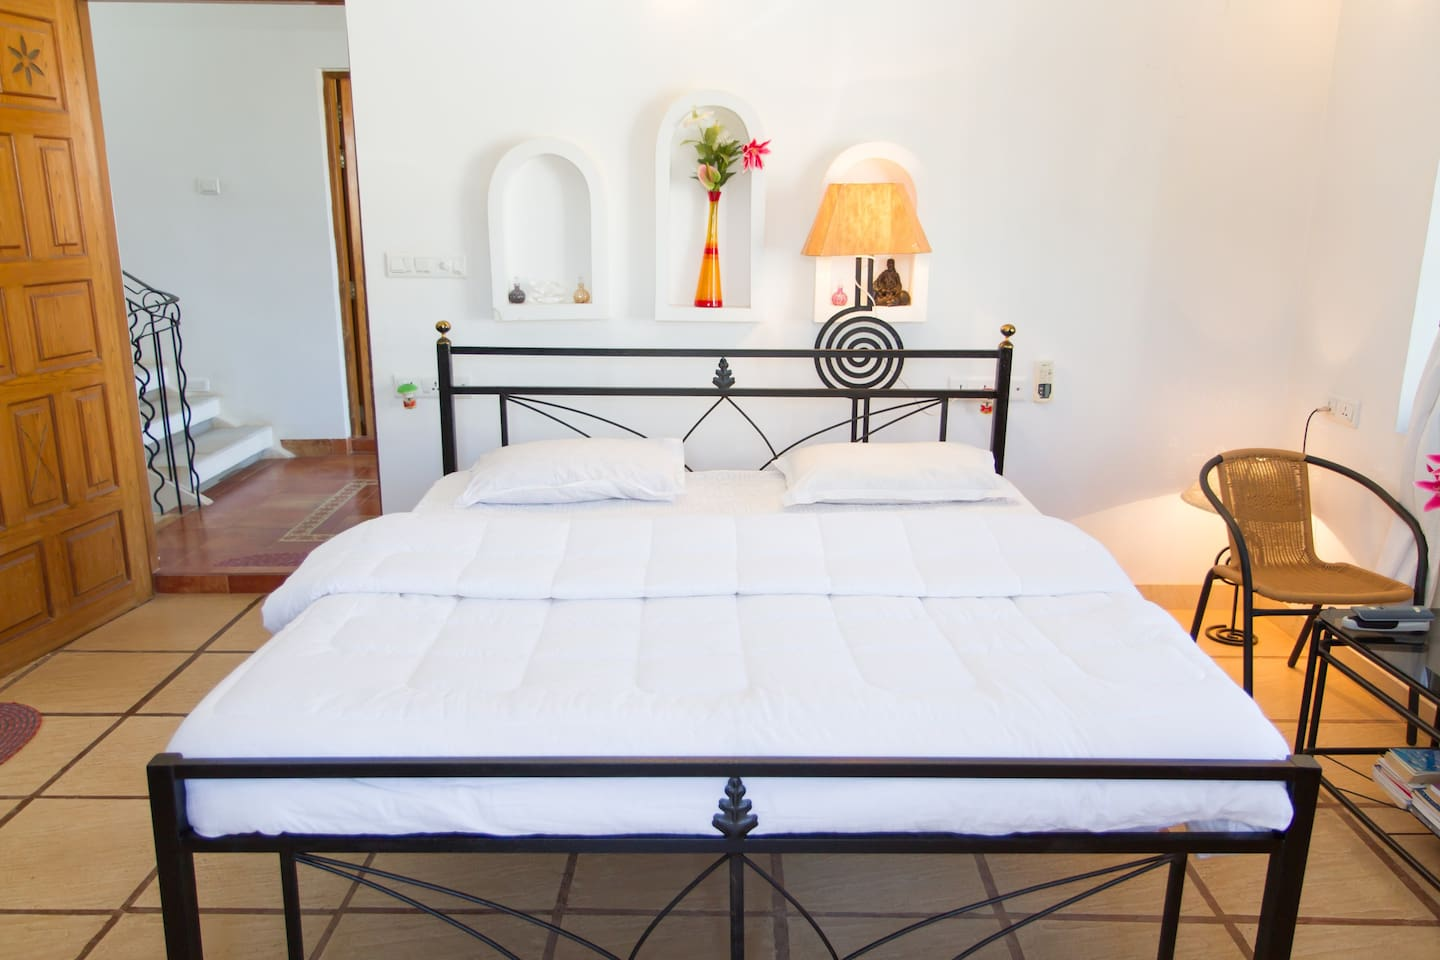 NOTICE THE SPECIAL FURNITURE AND THE SPECIAL BED. NEED MORE PILLOWS/MATTRESSES/LINEN? ASK